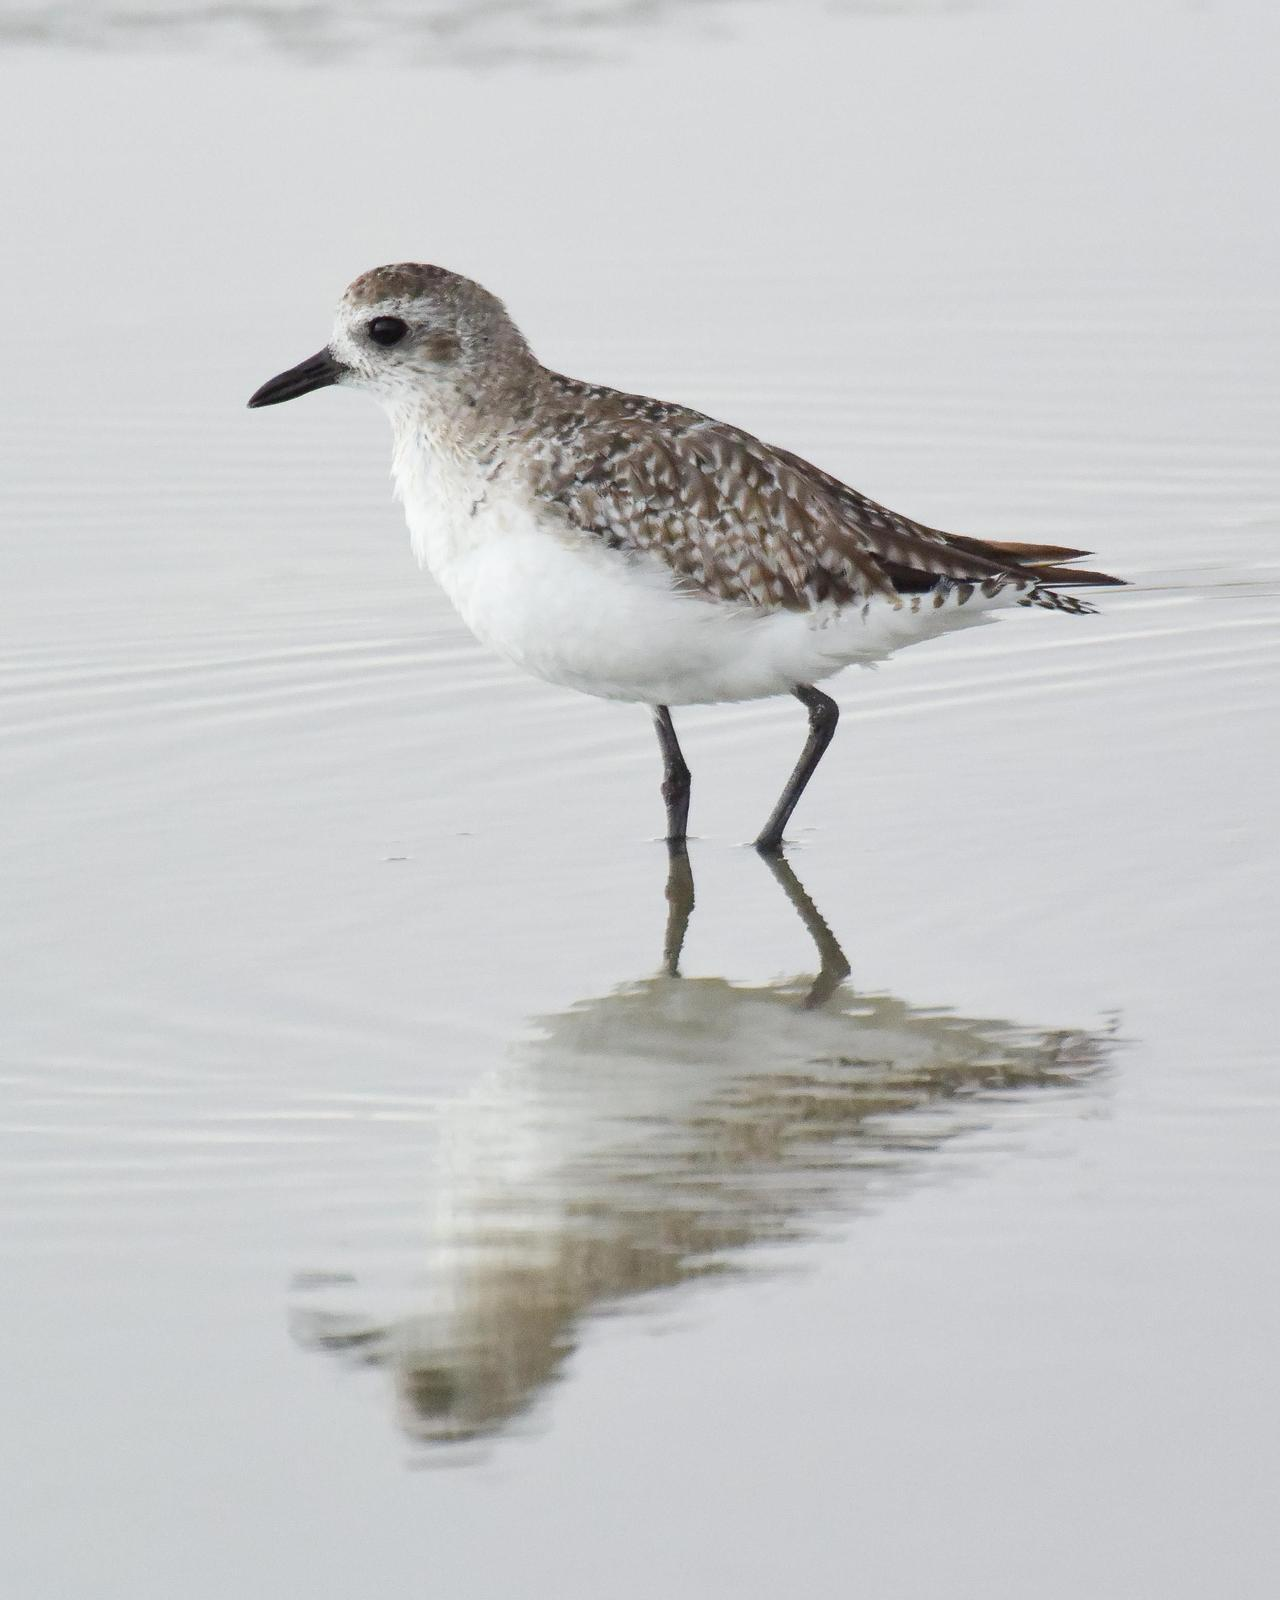 Black-bellied Plover Photo by Steve Percival